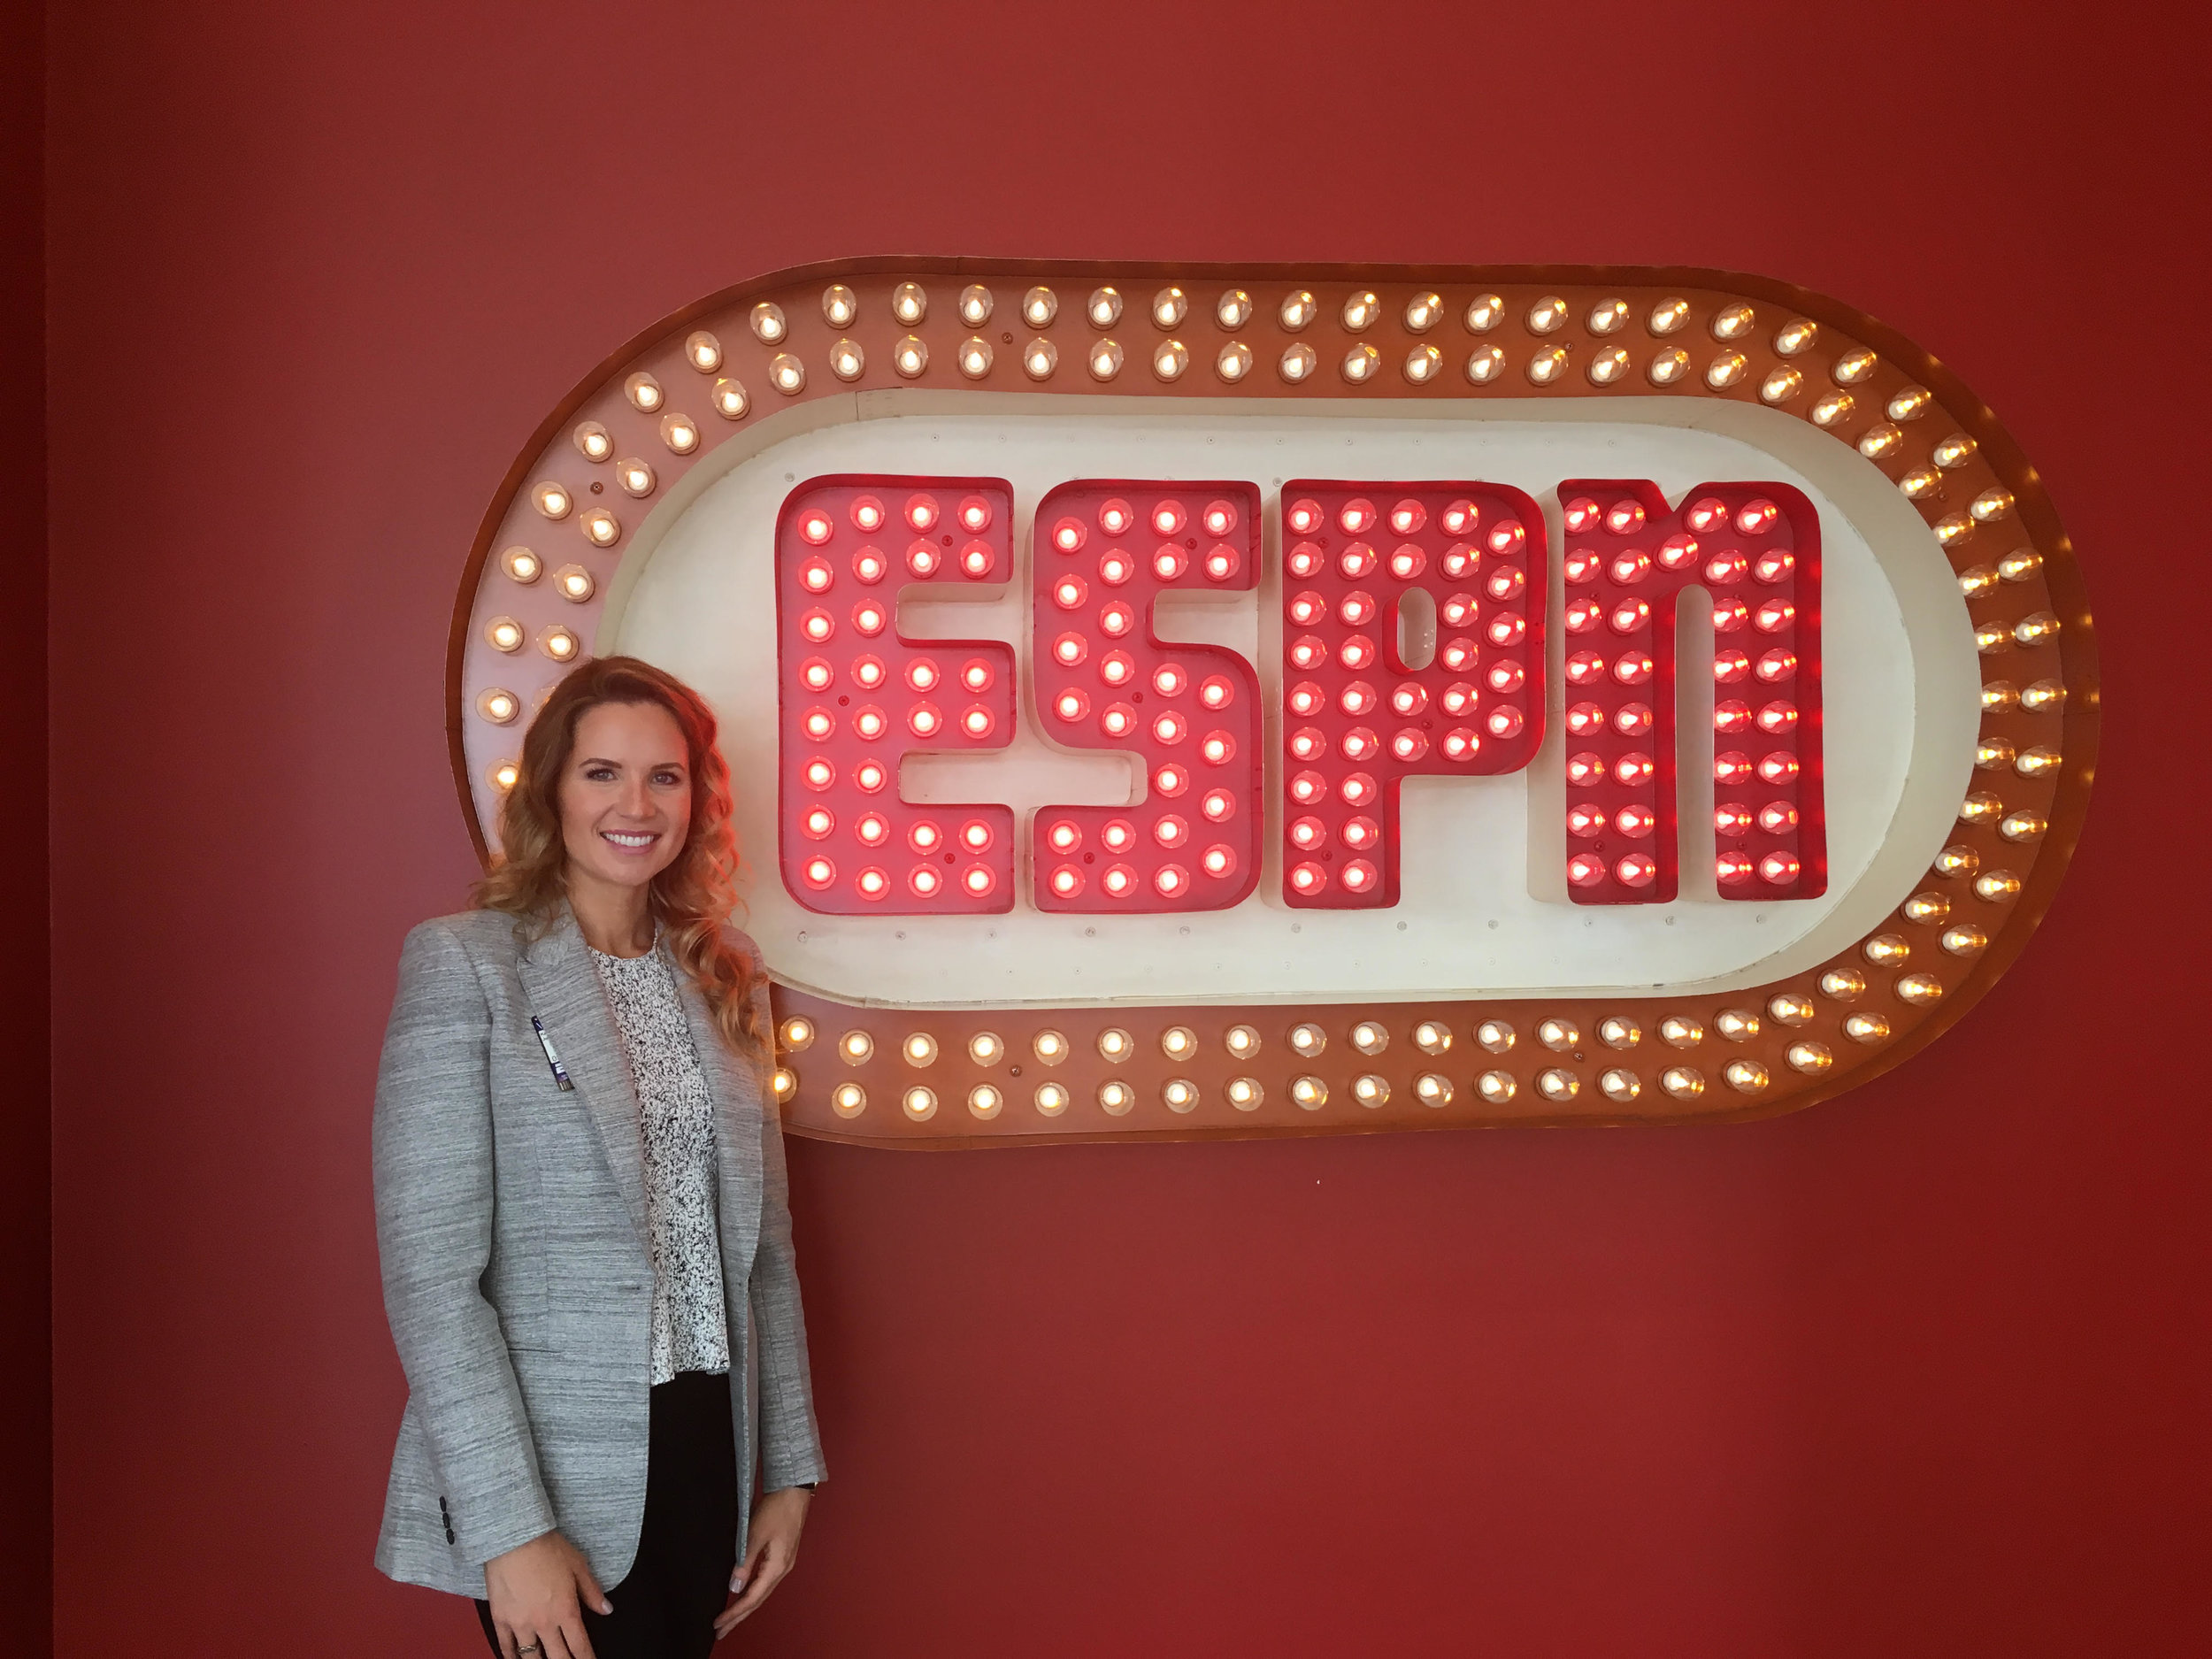 At ESPN HQ in Bristol, CT